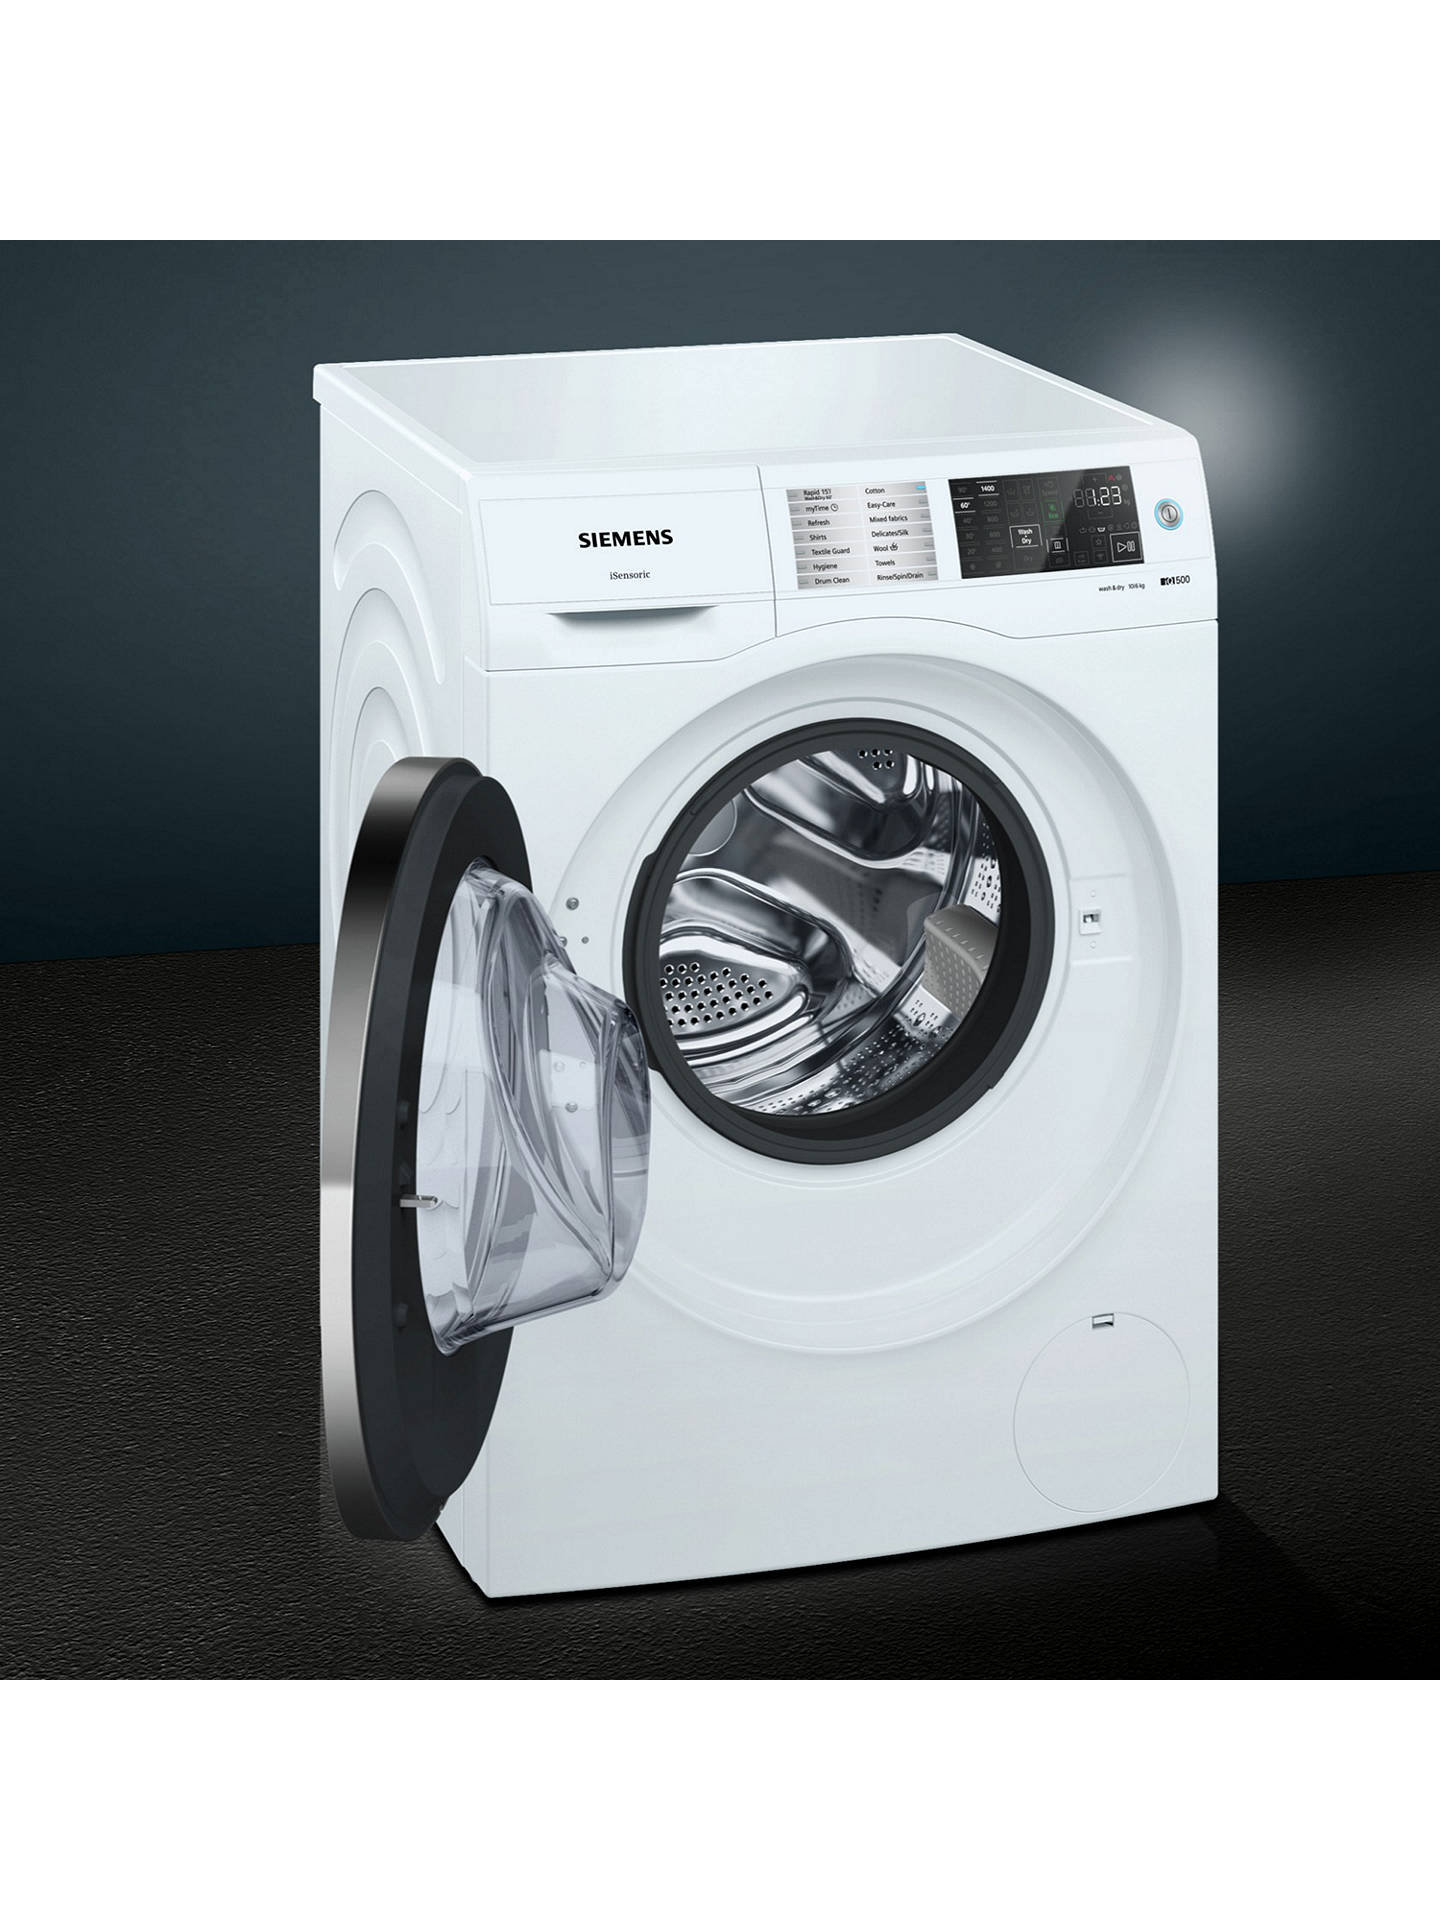 BuySiemens WD14U520GB Washer Dryer, 10kg Wash/6kg Dry Load, A Energy Rating, 1400rpm Spin, White Online at johnlewis.com